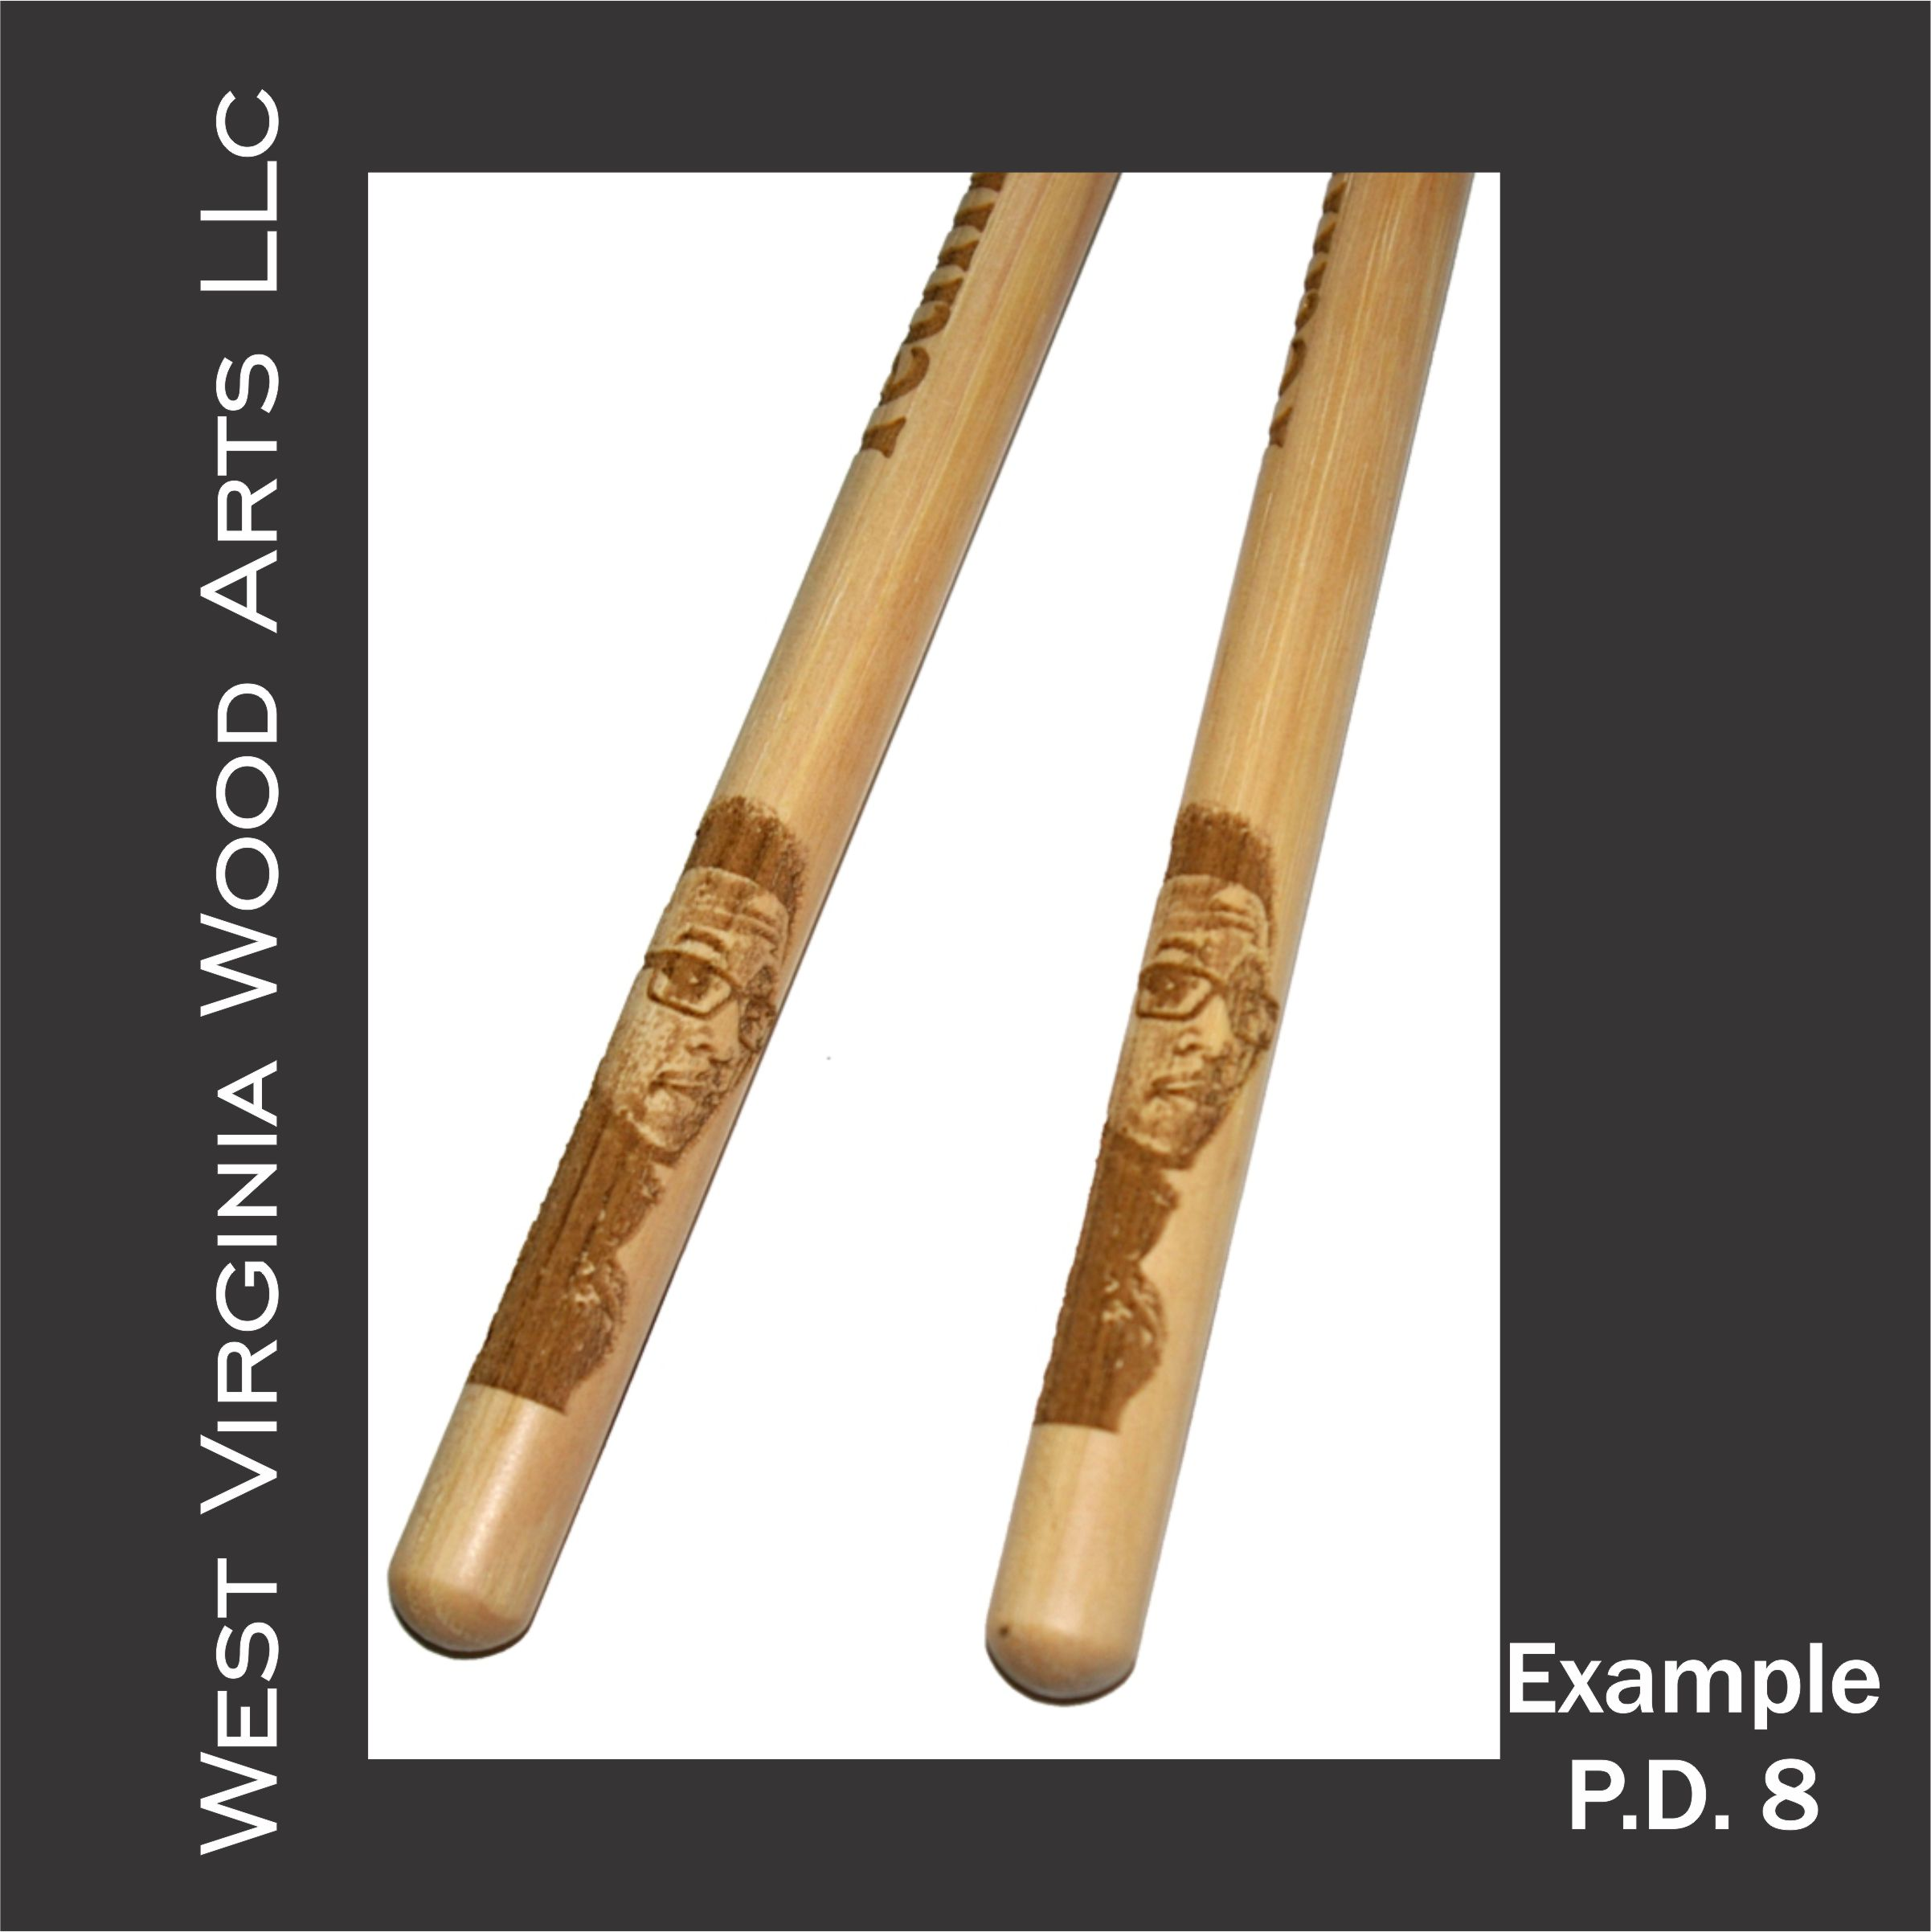 Personalized drumstick set with photo engraving example